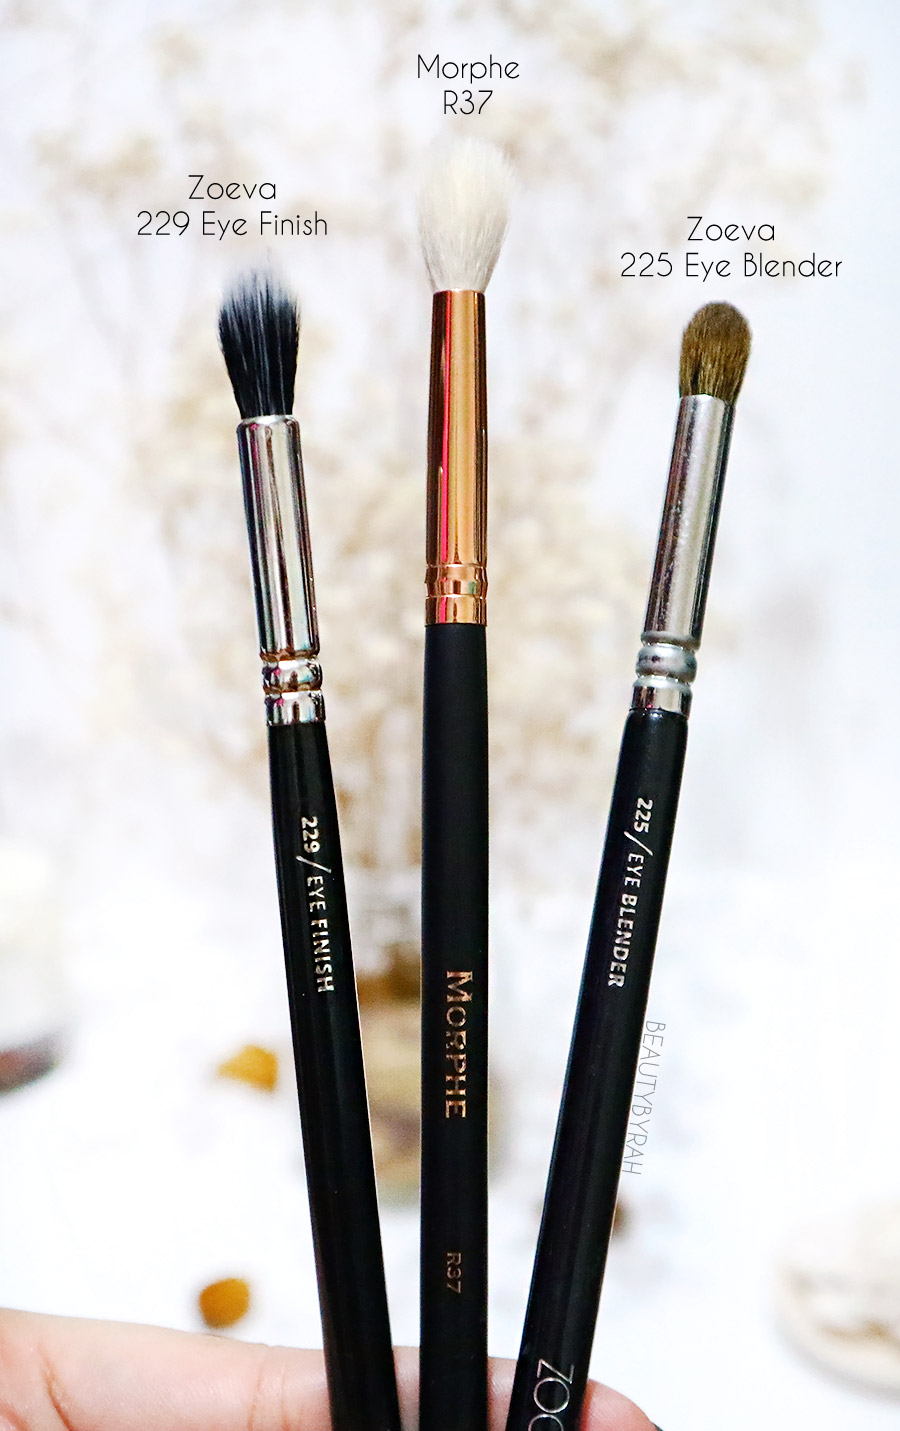 Top affordable eyeshadow brushes beginners - Zoeva 229 Zoeva 225 Morphe R37